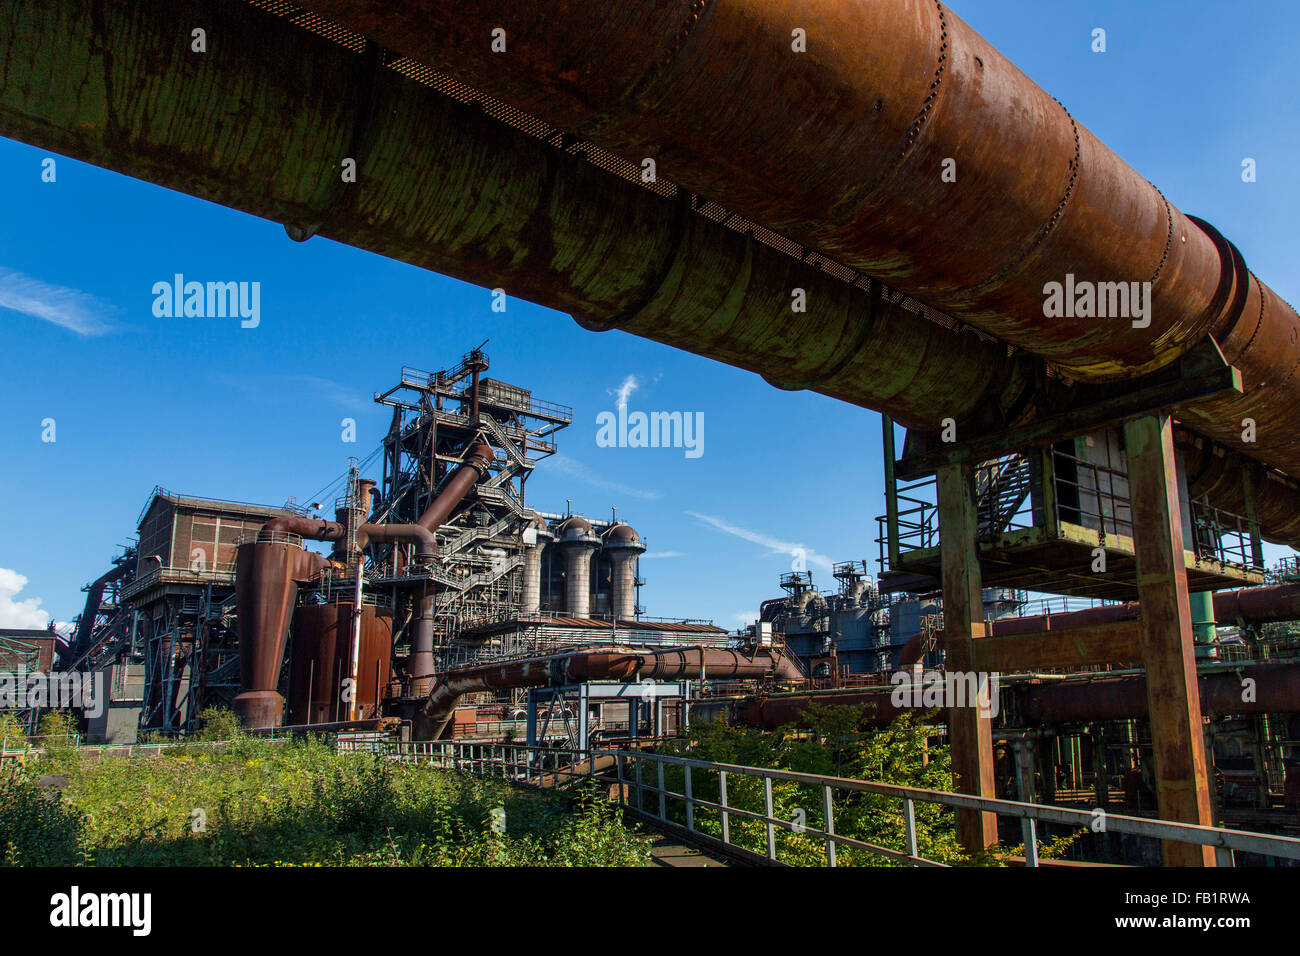 Old steelworks in Duisburg Meidrich, Germany, today a museum, industrial landscape park, route of industrial heritage, - Stock Image